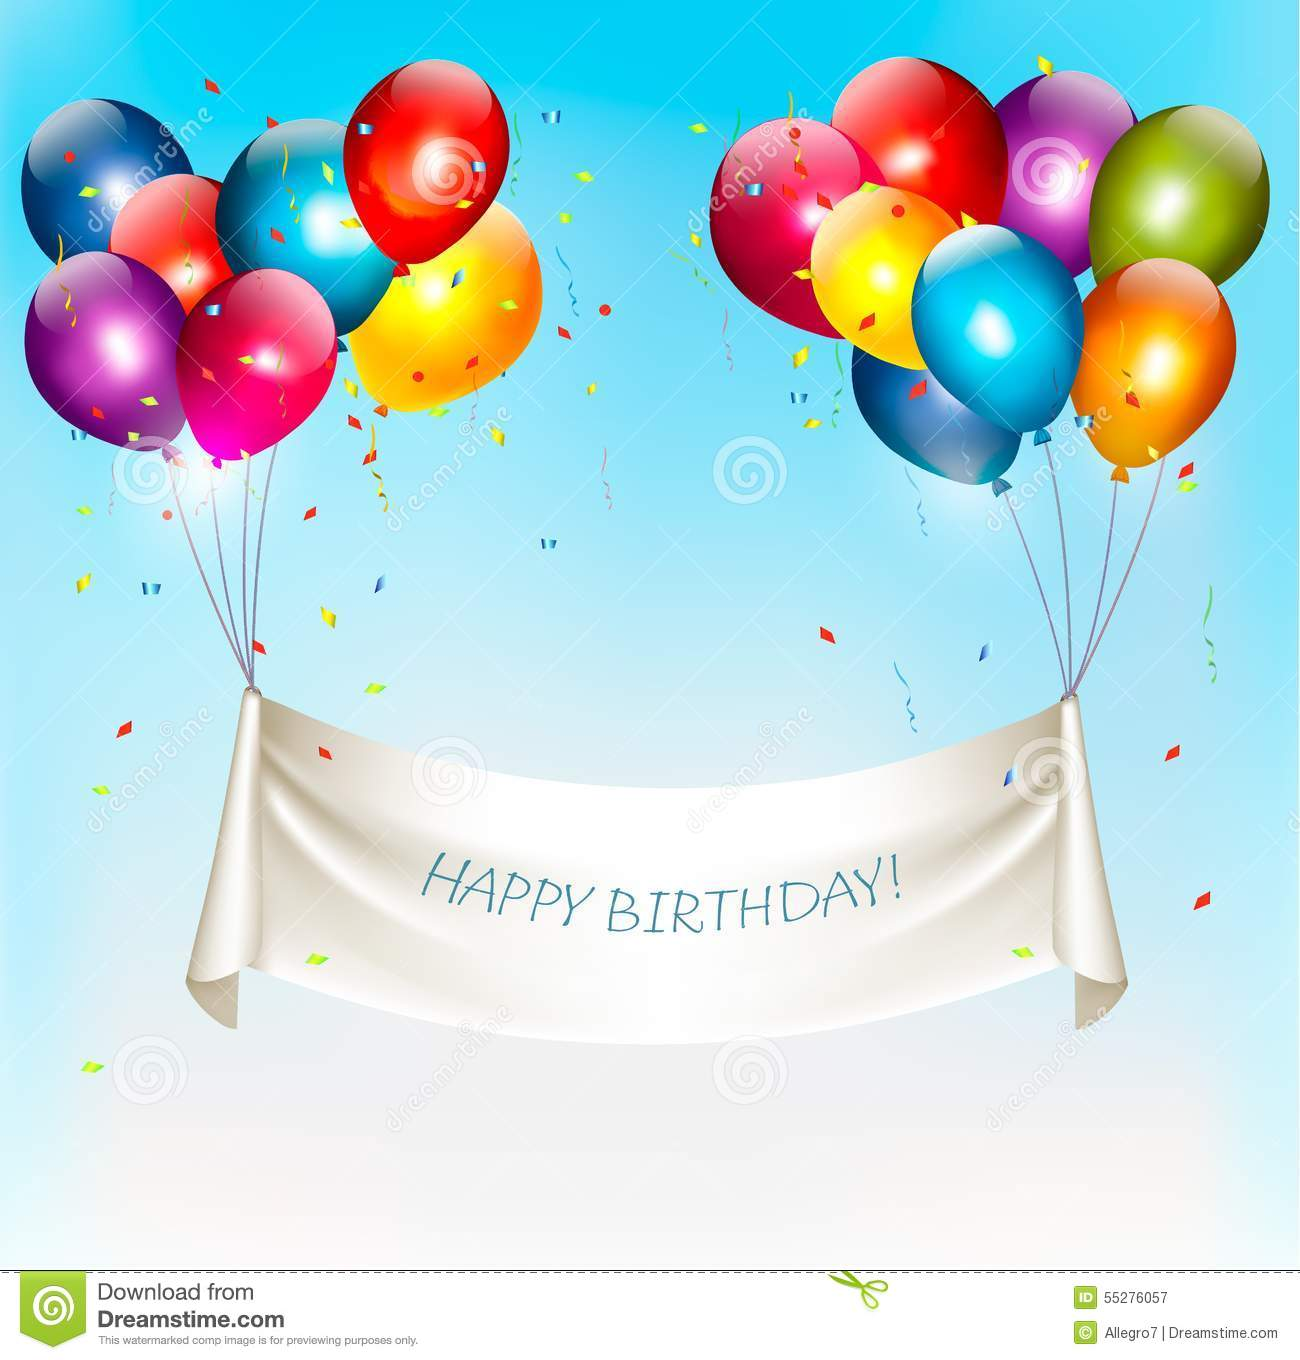 Holiday Birthday Banner With Colorful Balloons Stock